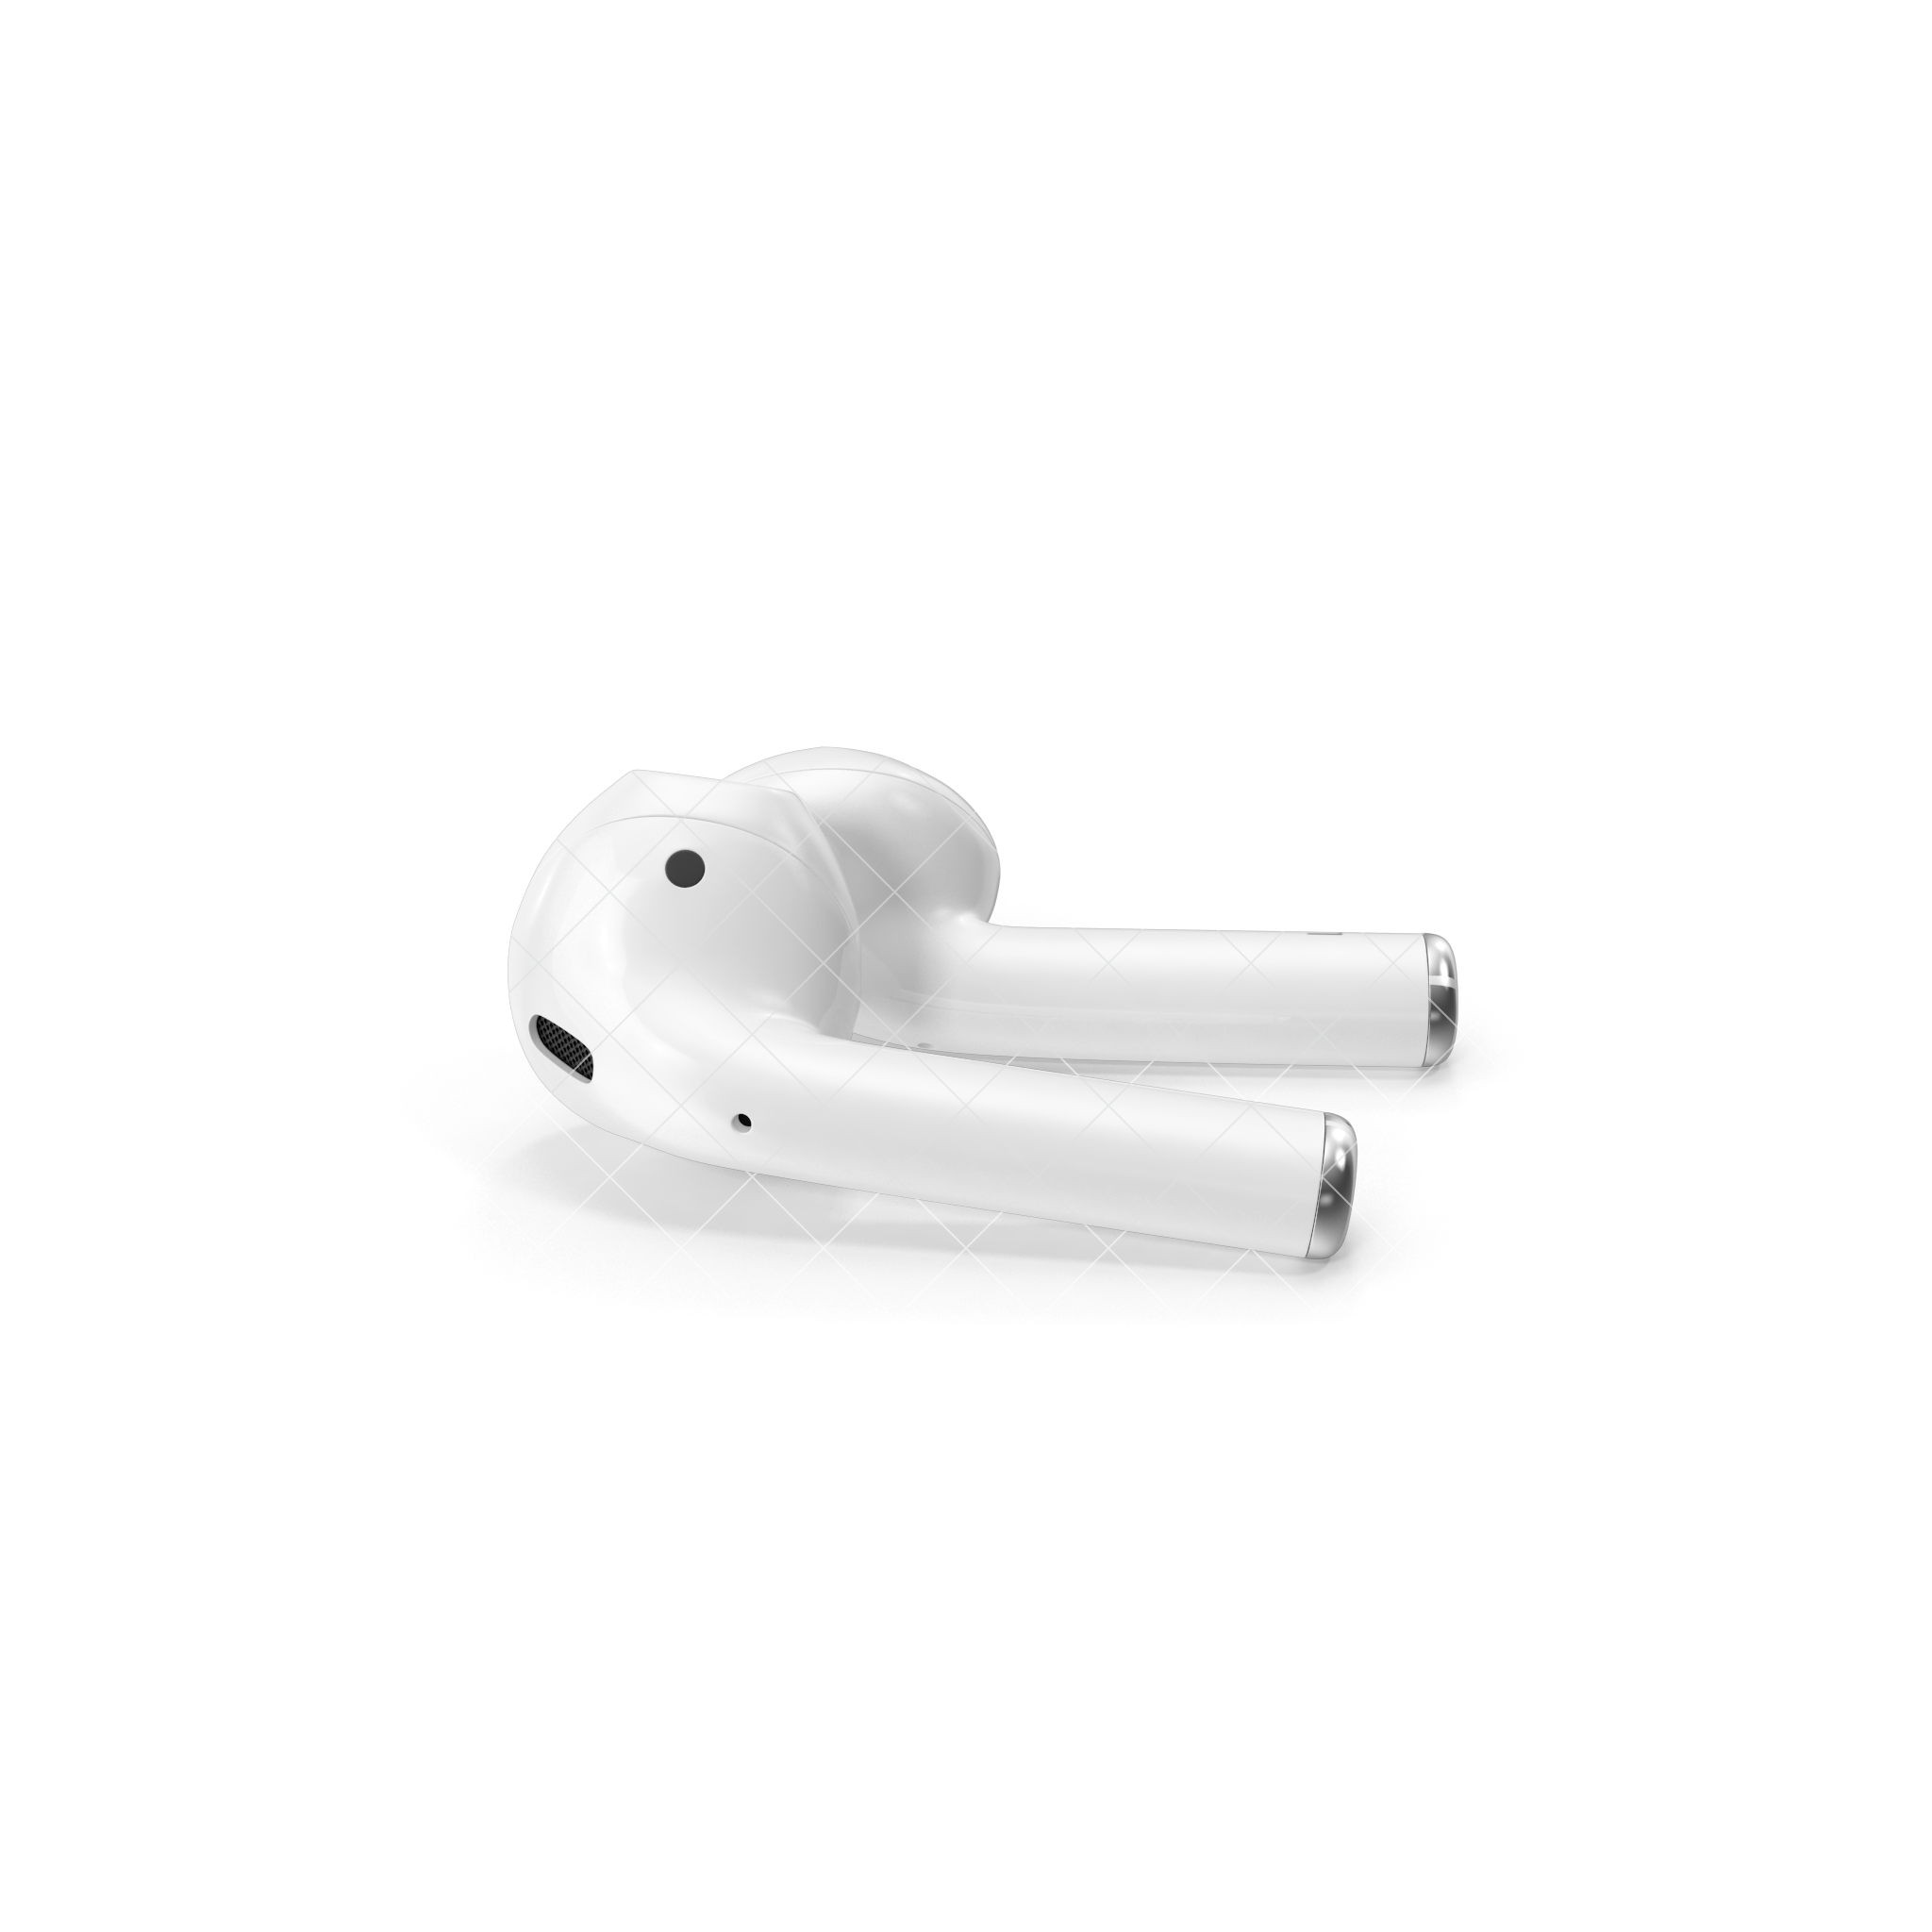 Apple AirPods.G10.watermarked.2k.png